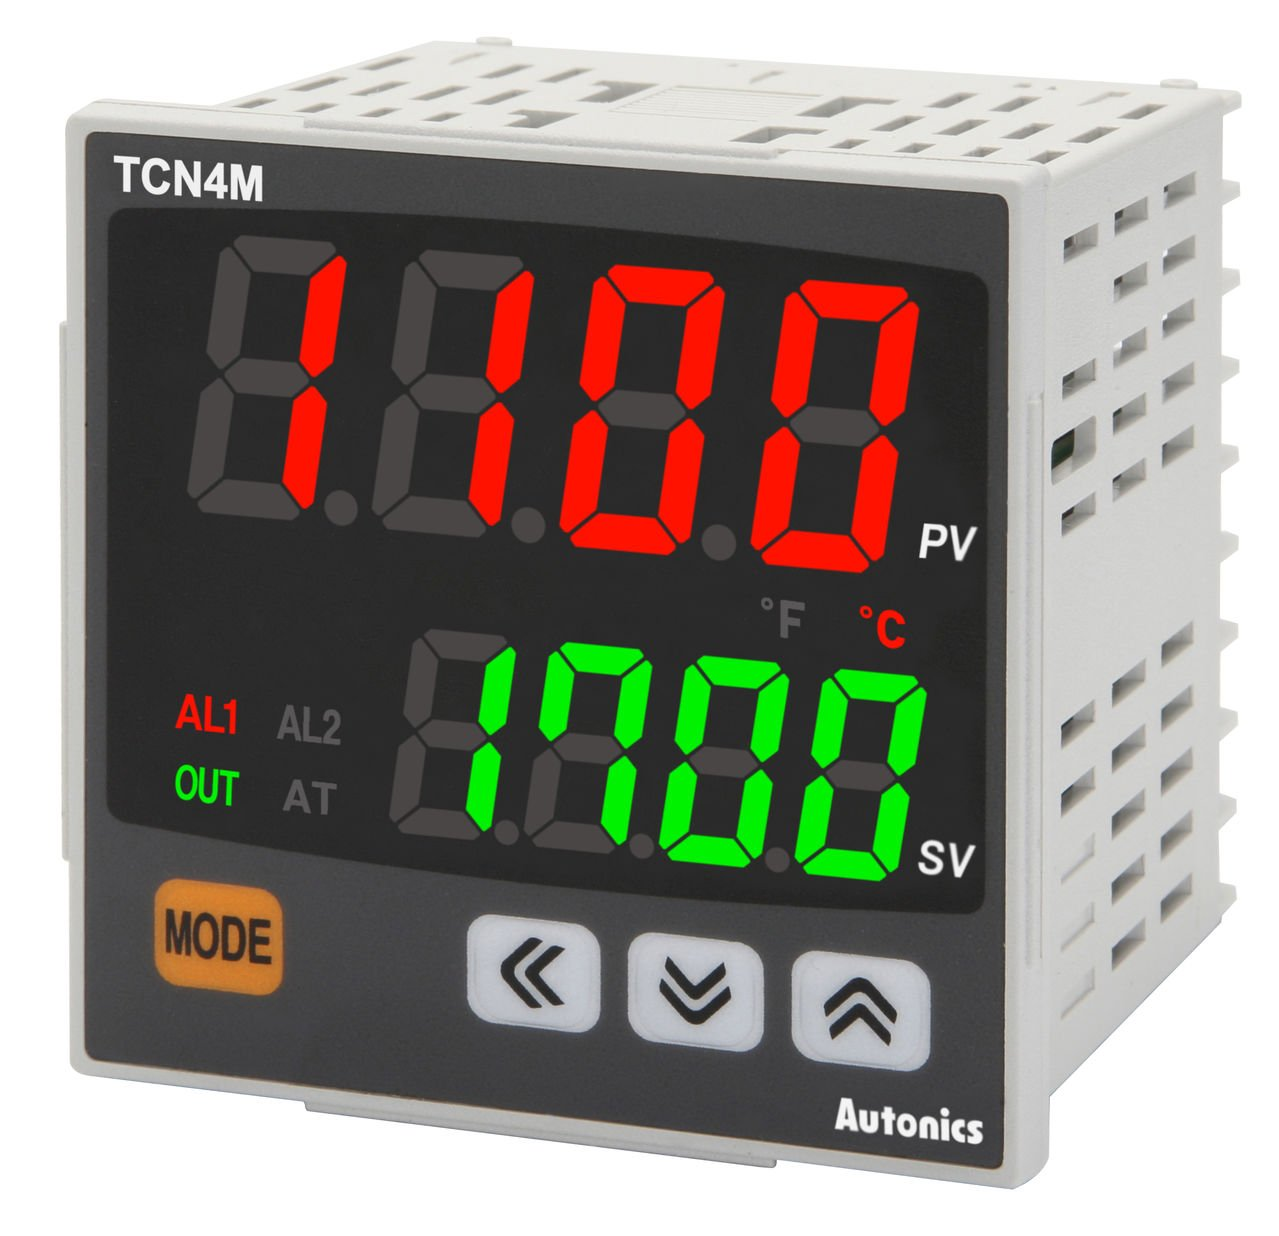 Autonics TCN4M-22R Temp Control, W72 x H72, Dual display 4 Digit, PID Control, Relay & SSR Output, 2 Alarm Output, 24 VAC,24-48VDC by Autonics USA, Inc